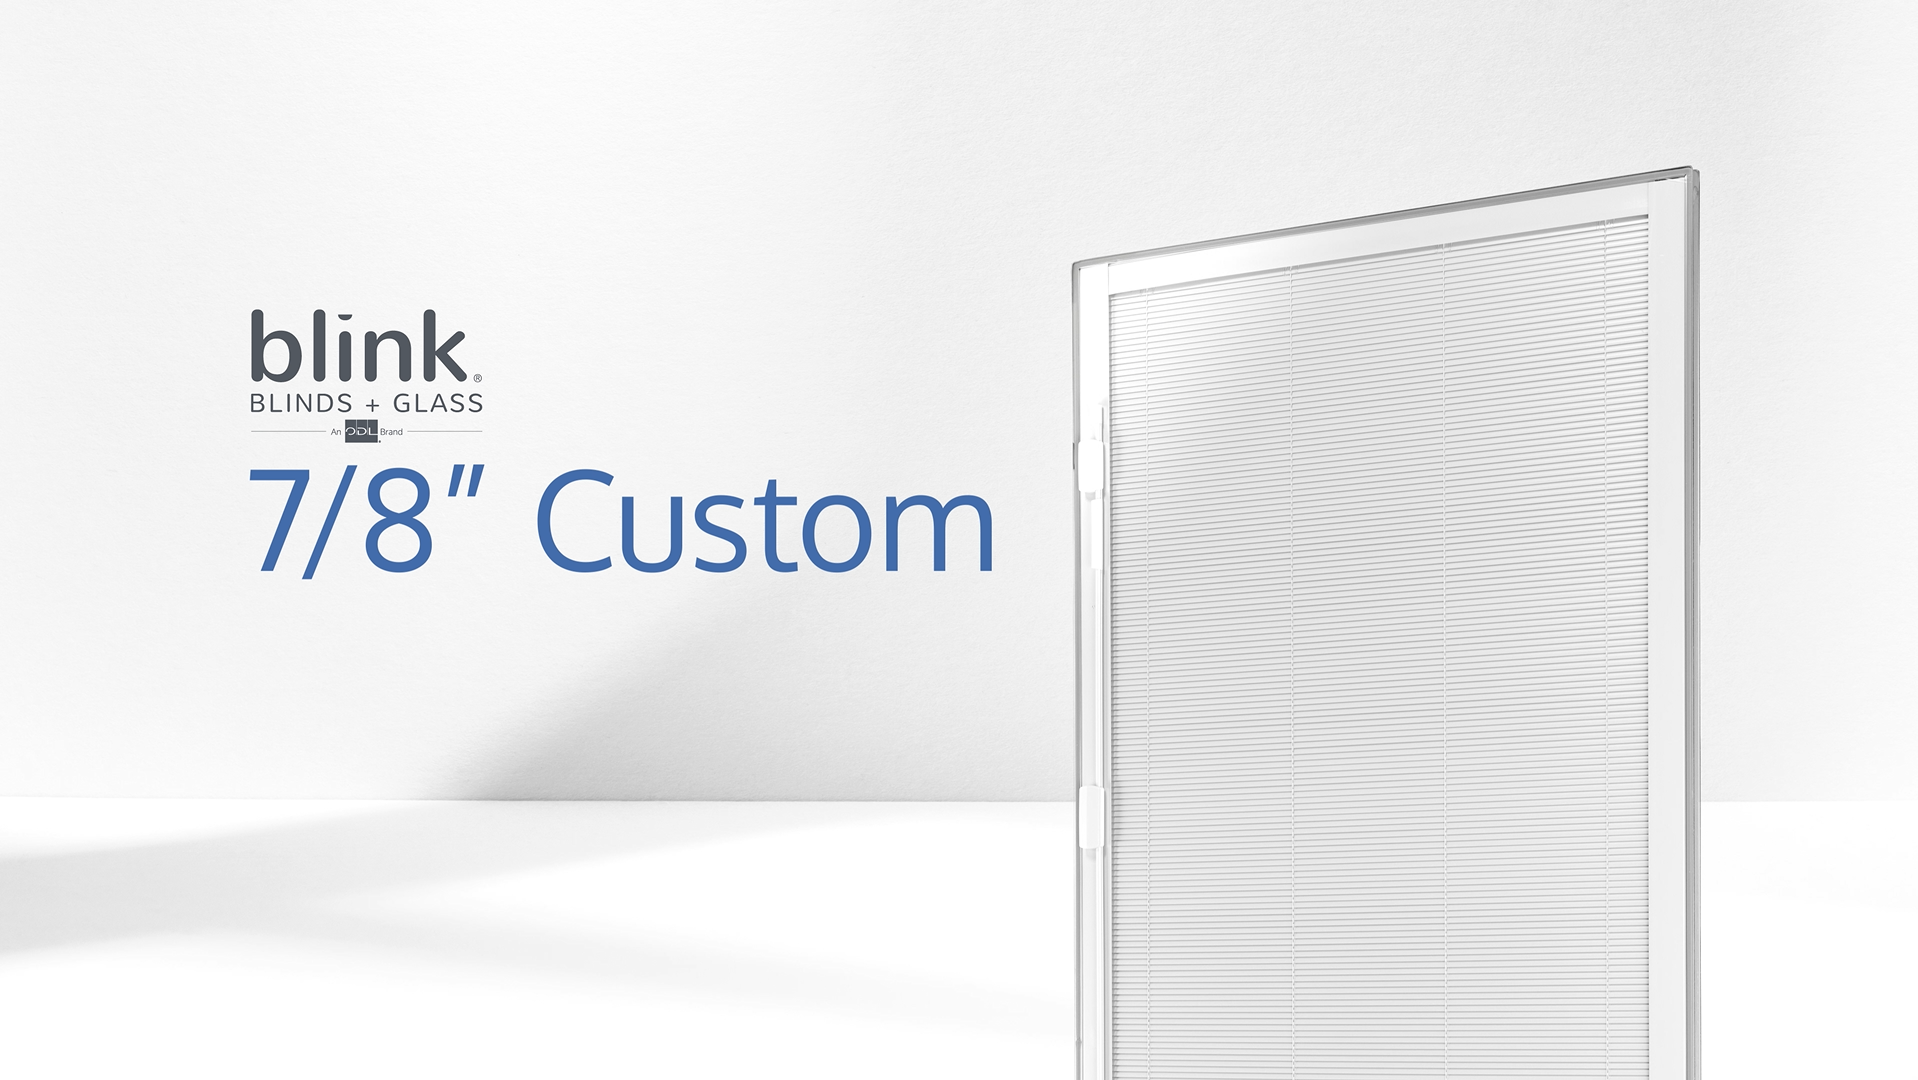 Blink 7/8-inch Custom for Windows and Doors Now Available from ODL, Inc.